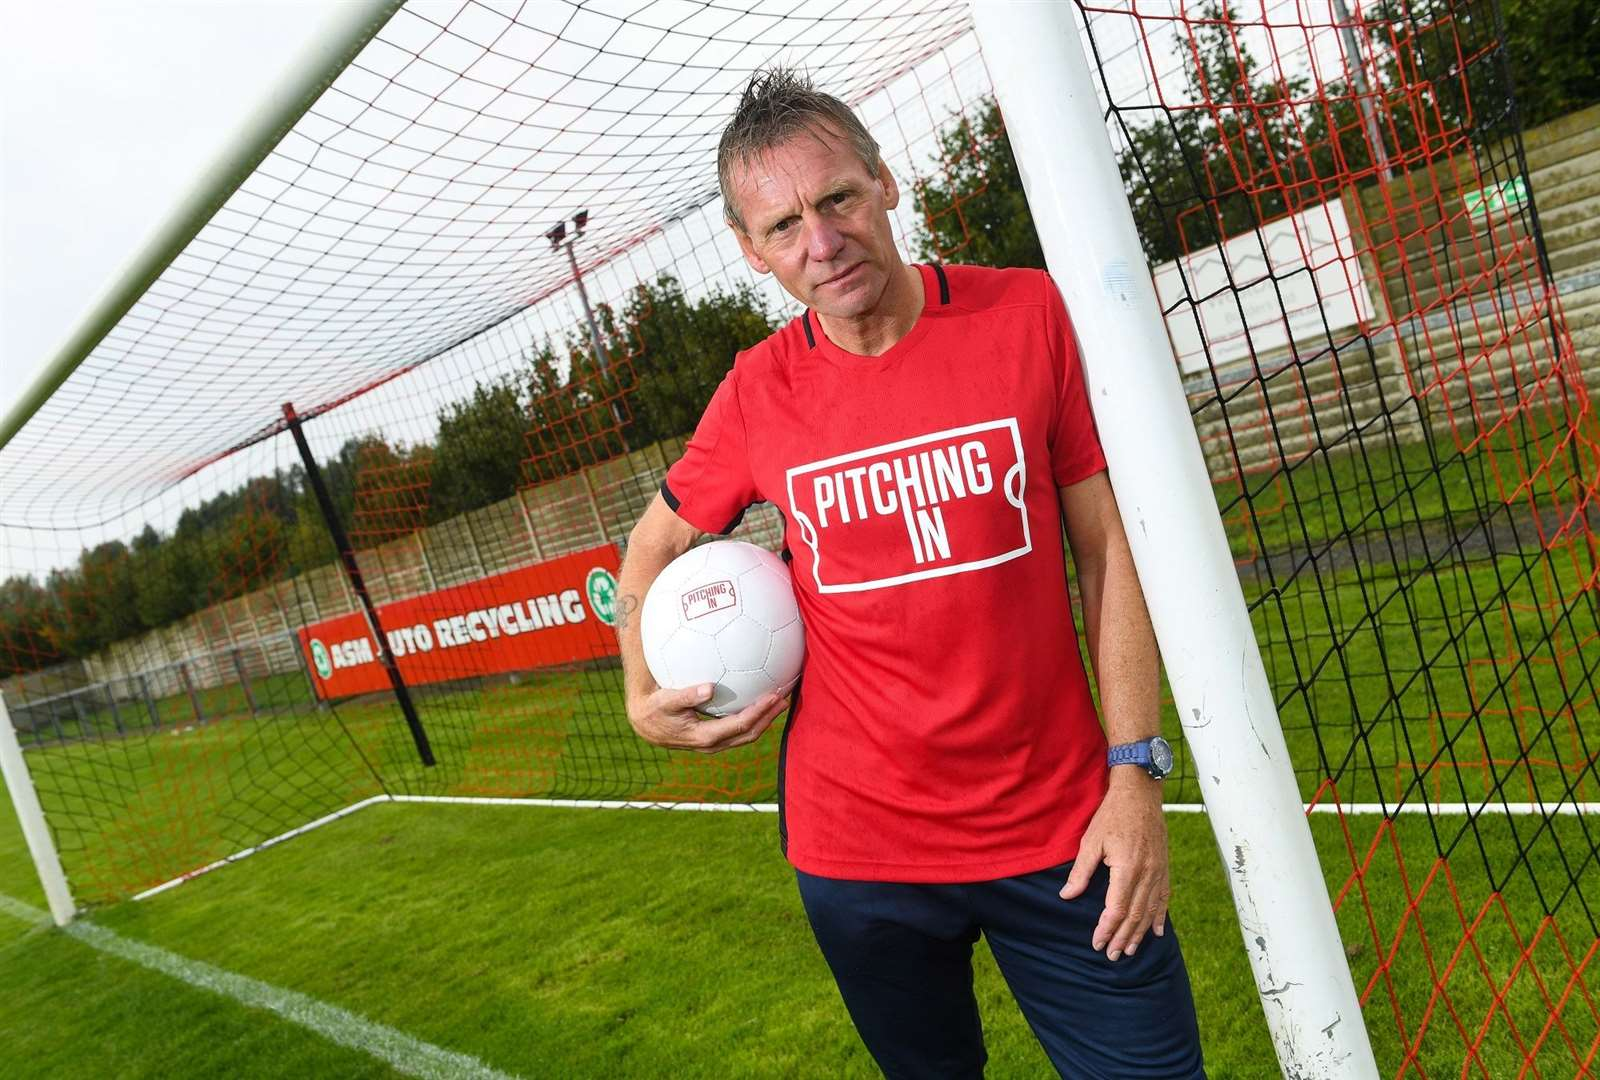 Former England defender and Pitching In ambassador Stuart Pearce. Picture: Doug Peters/PA Wire